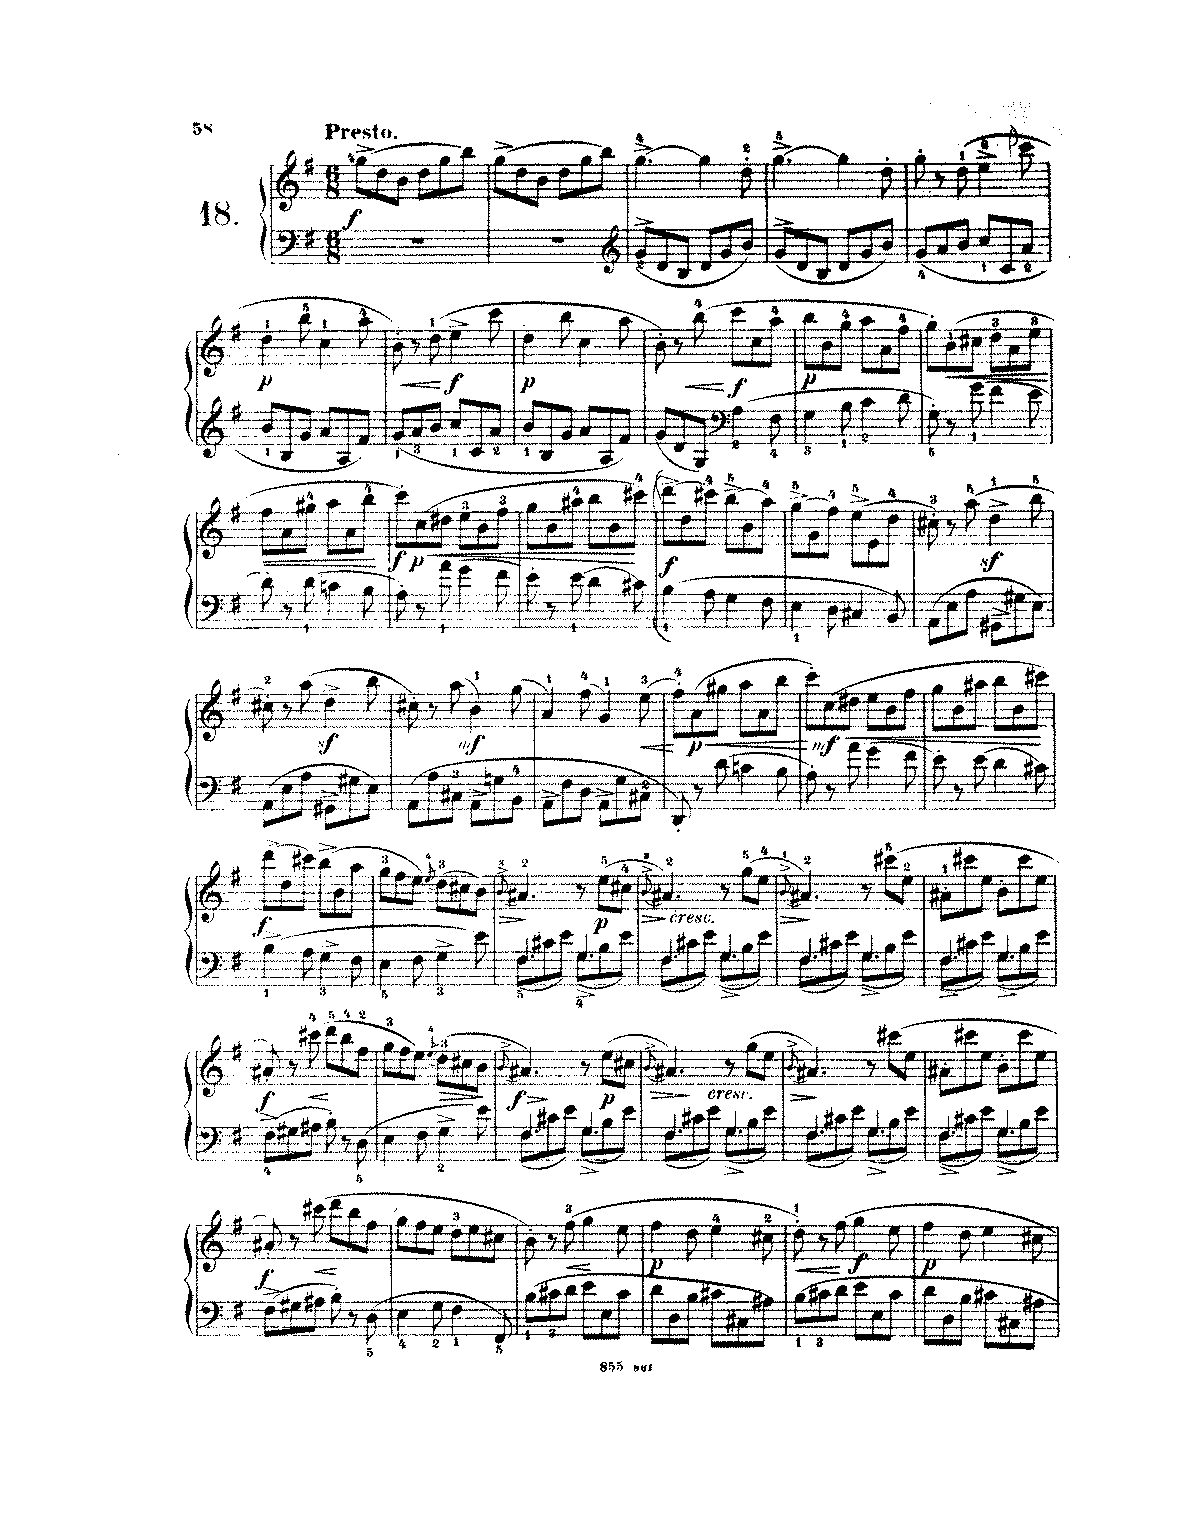 PMLP404110-Sibley1802.22722 - No. 18 - Sonata in G major, K. 241.pdf